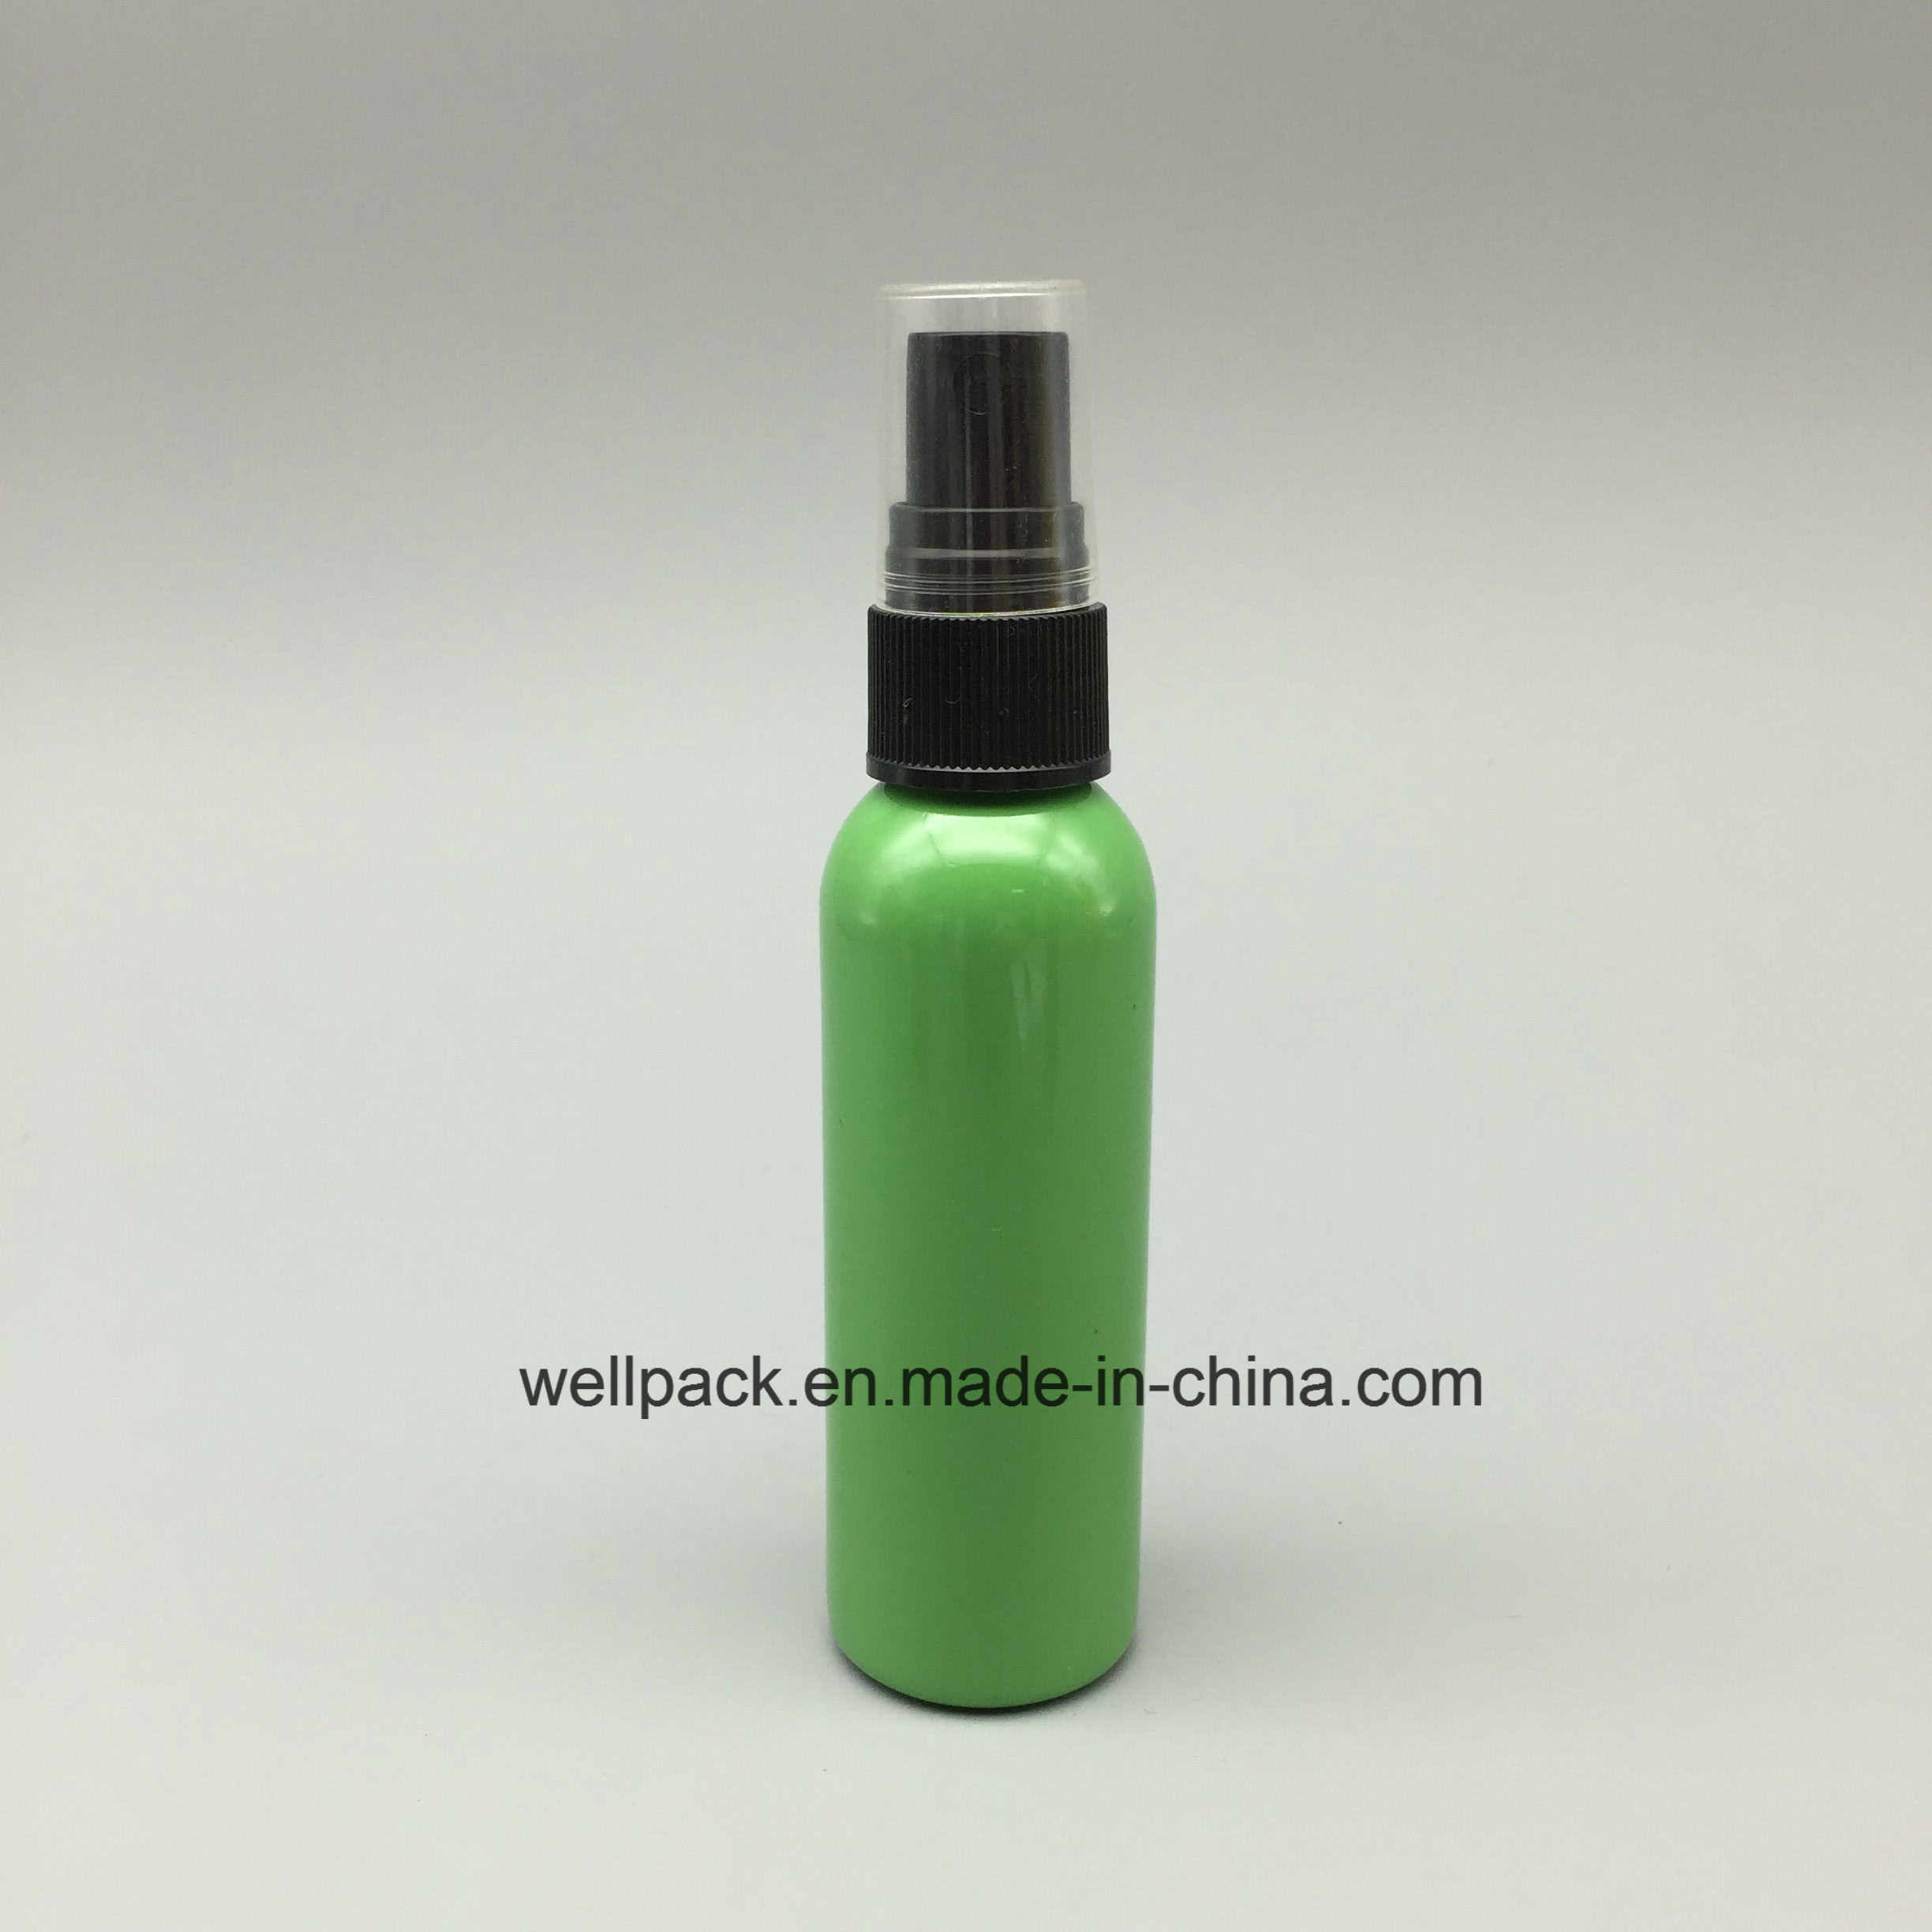 60ml Green Pet Plastic Bottle with Mist Sprayer